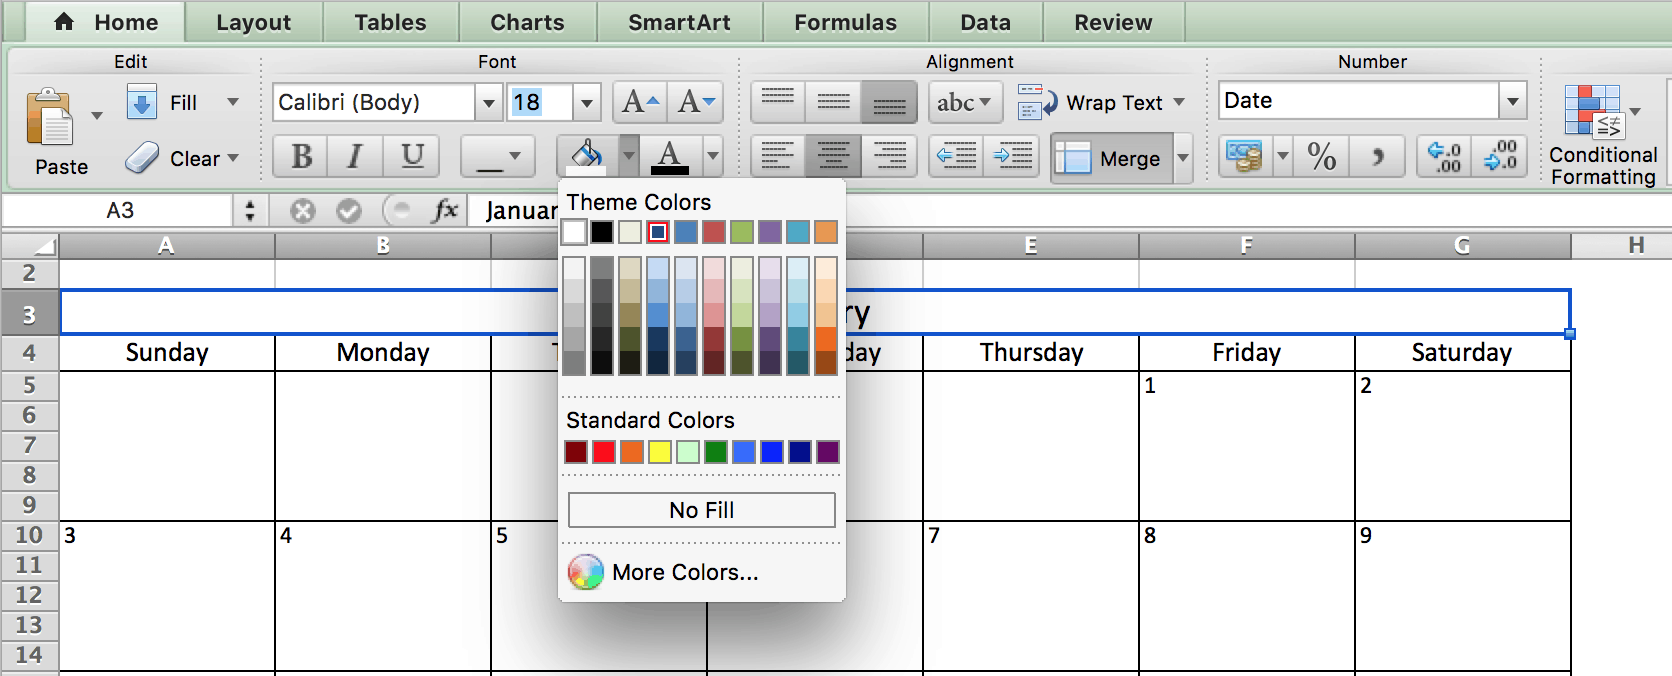 Ediblewildsus  Unique Make A  Calendar In Excel Includes Free Template With Extraordinary Choosing Colors  Calendar In Excel With Divine Excel Sample Also Quotient Excel In Addition Excel Cell Drop Down List And How To Make Pivot Table In Excel As Well As Excel Count Multiple Criteria Additionally Excel To Access Database From Smartsheetcom With Ediblewildsus  Extraordinary Make A  Calendar In Excel Includes Free Template With Divine Choosing Colors  Calendar In Excel And Unique Excel Sample Also Quotient Excel In Addition Excel Cell Drop Down List From Smartsheetcom